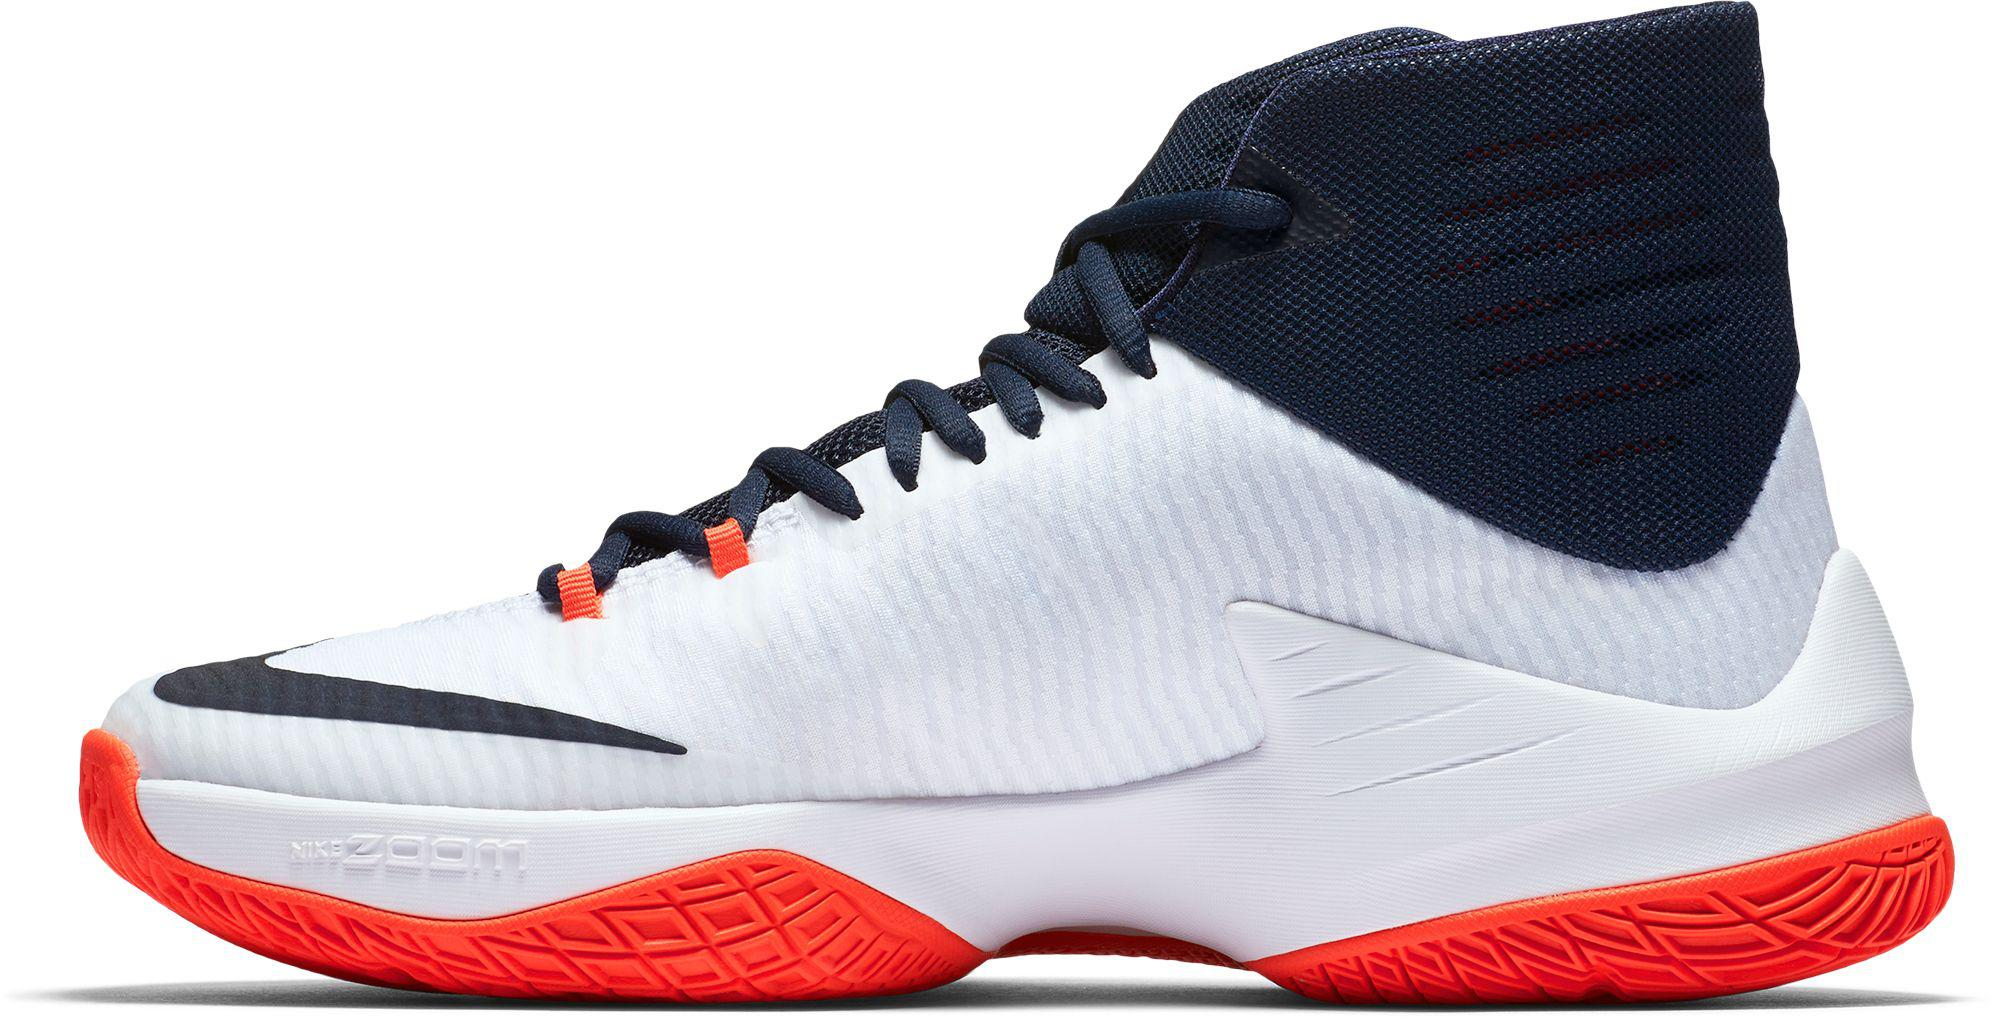 c6a4ce0d2db5 nike-WhiteObsidian-Zoom-Clear-Out-Basketball-Shoes.jpeg